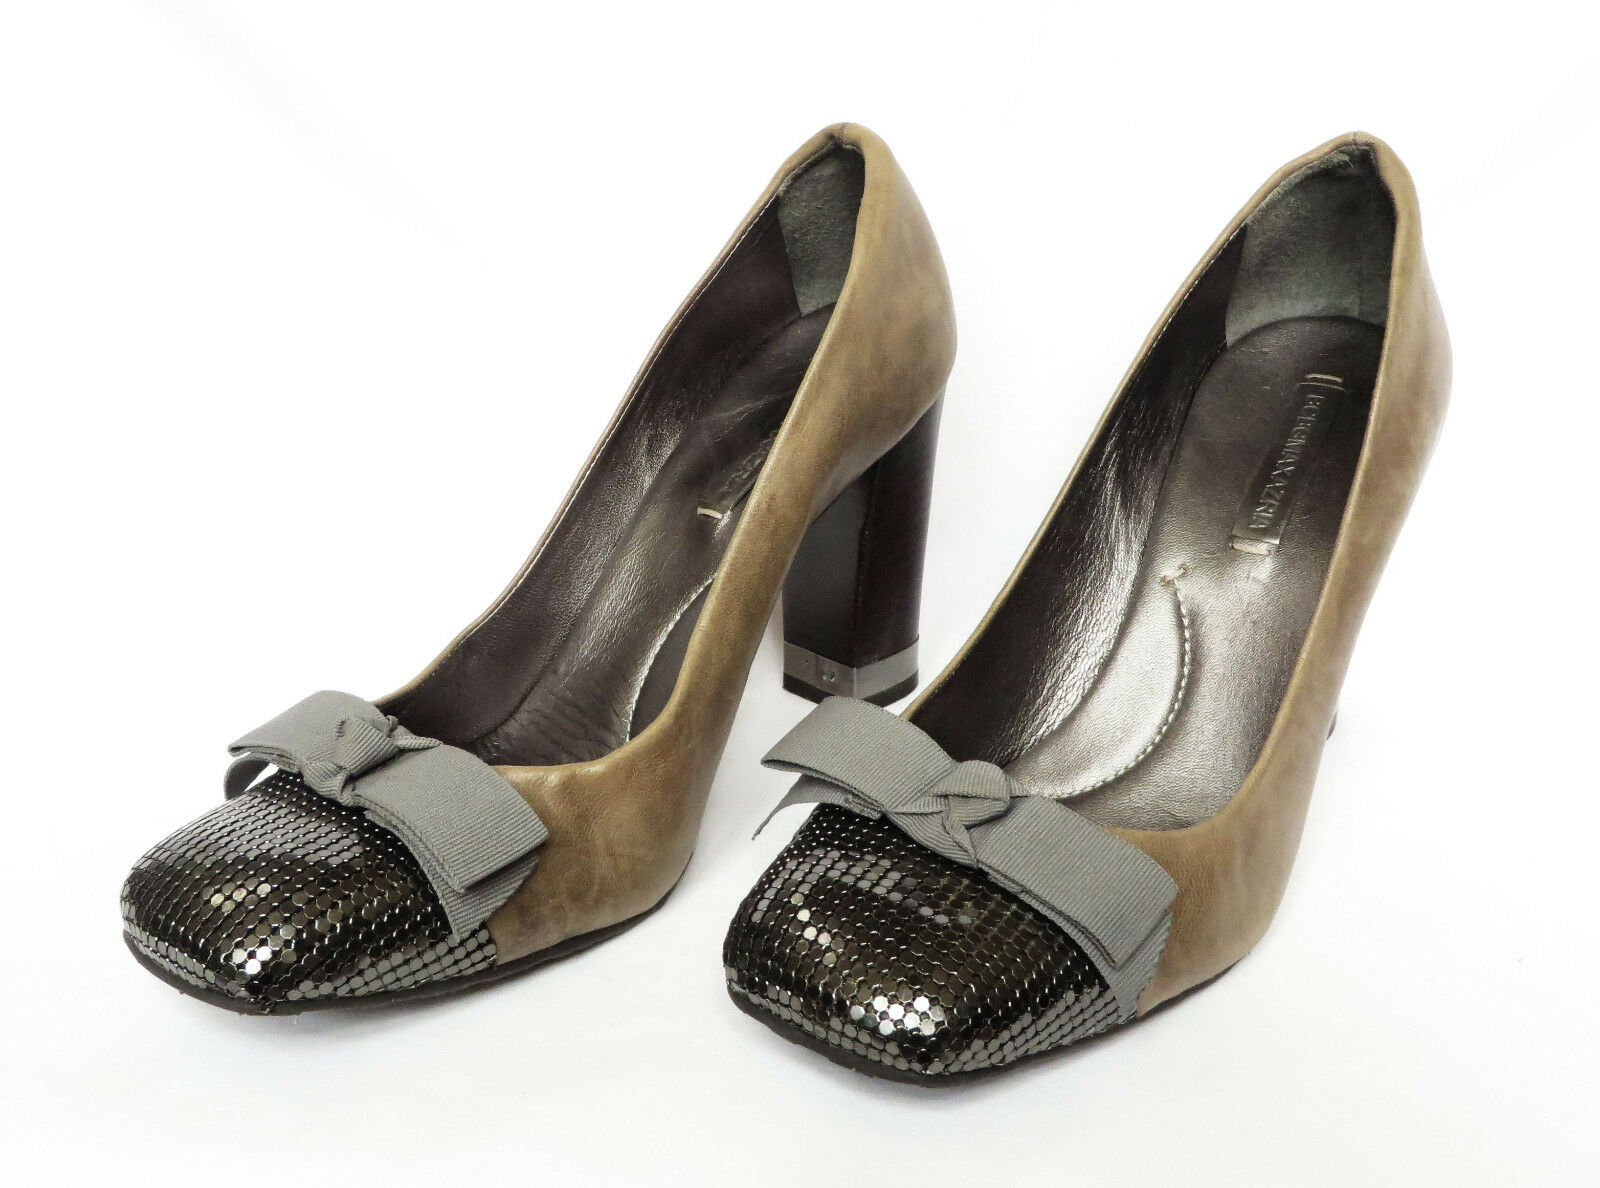 BCBG MAXAZRIA Womens Brown Leather Bow Metallic Square Toe Heels shoes 40 10